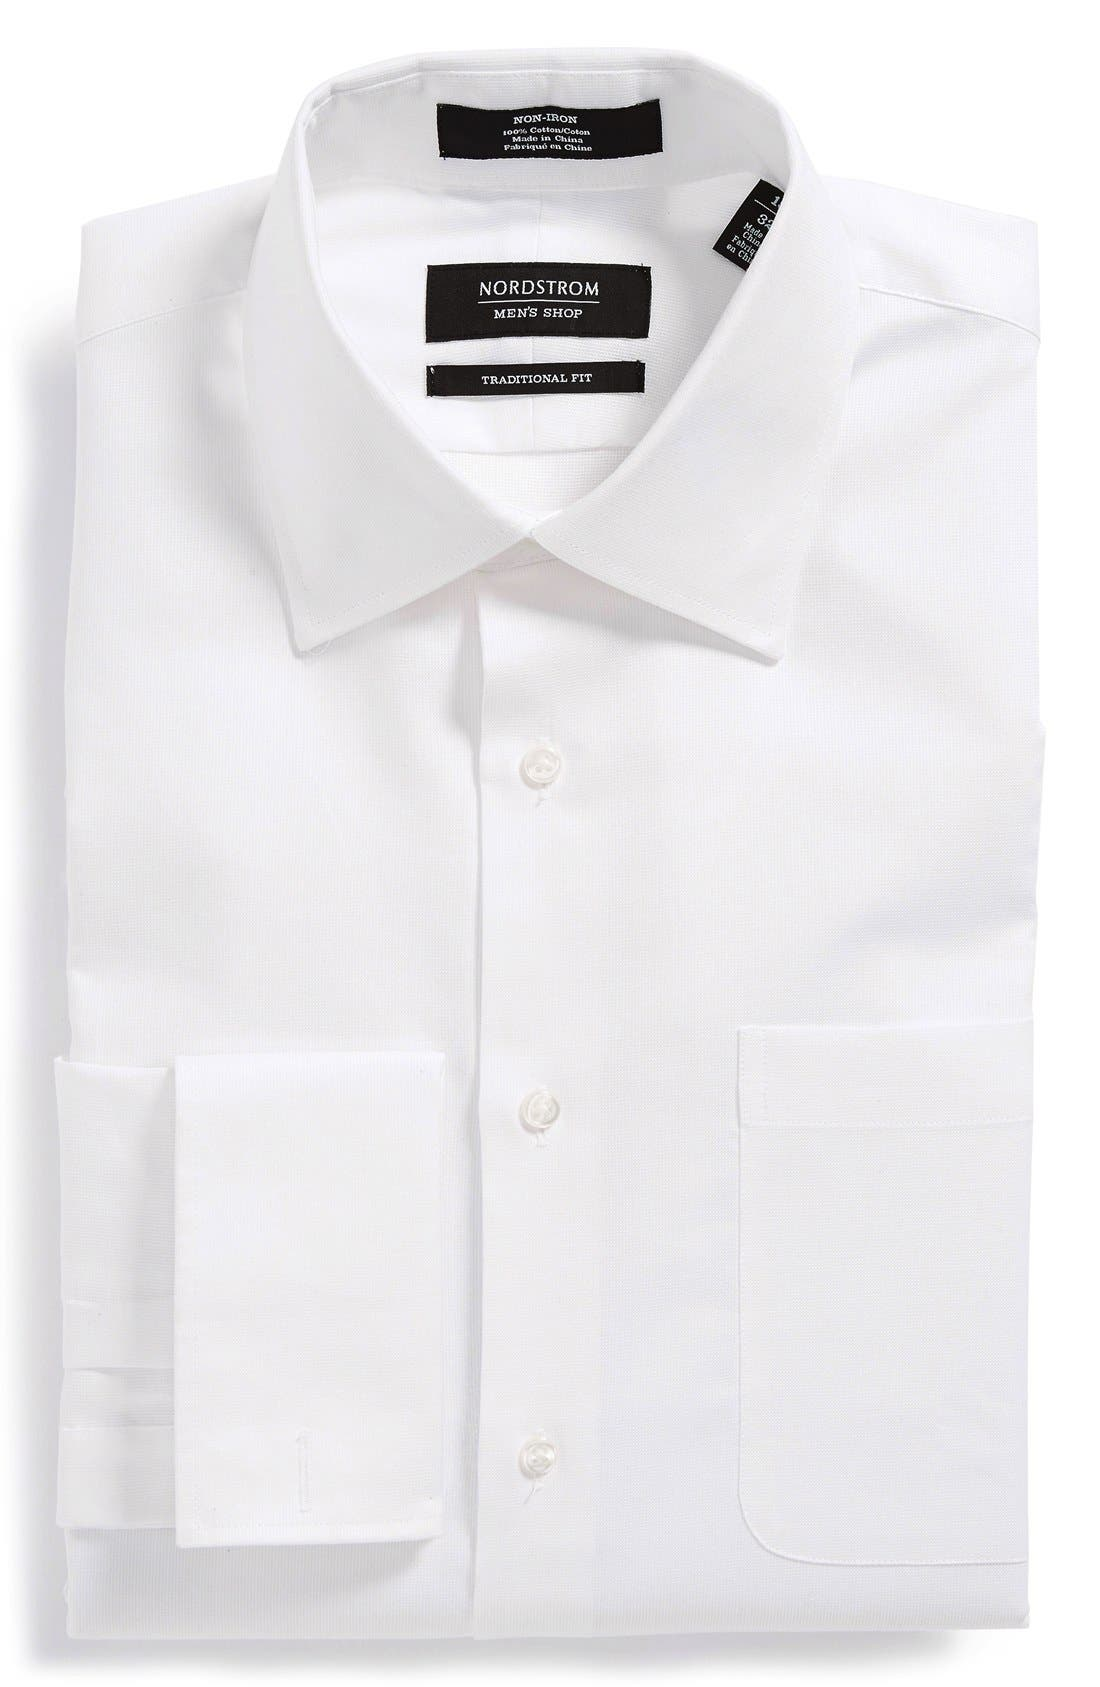 Nordstrom Traditional Fit Non-Iron Dress Shirt,                             Main thumbnail 1, color,                             White